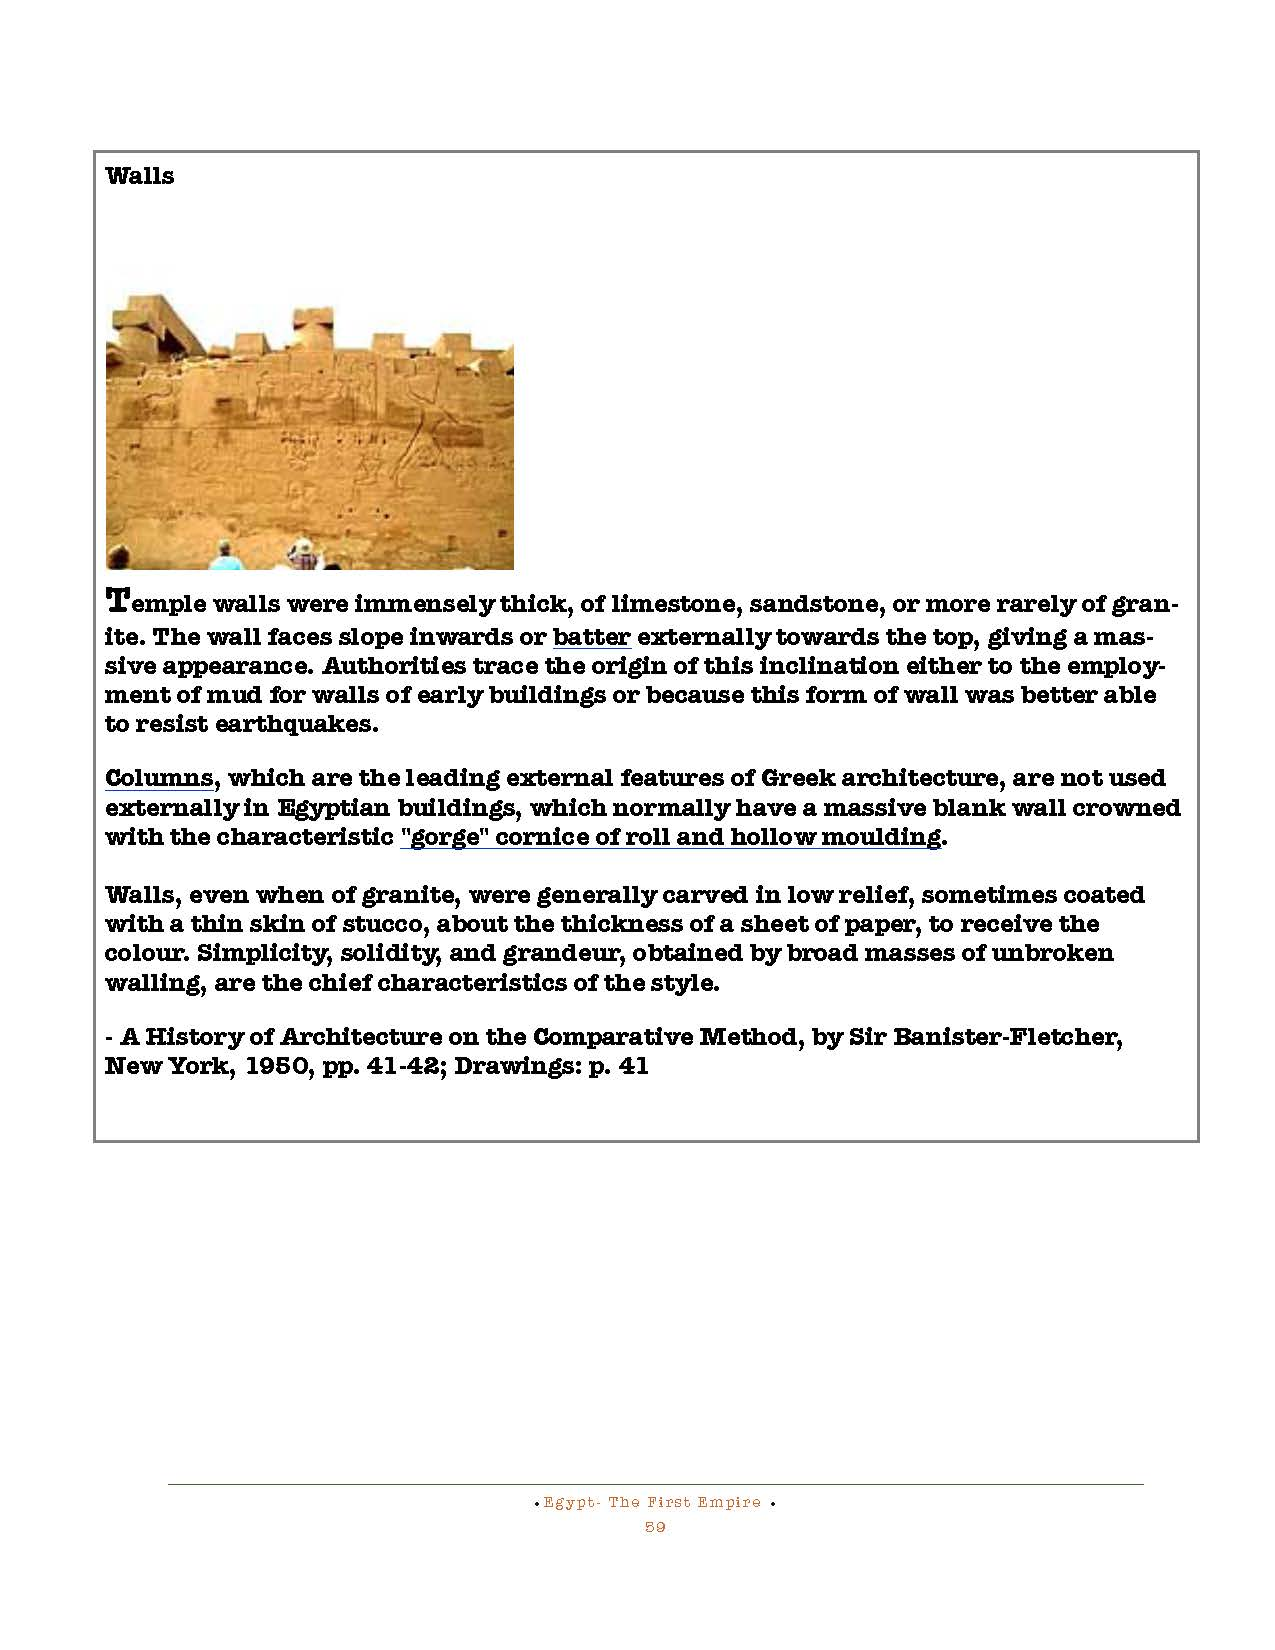 HOCE- Egypt  (First Empire) Notes_Page_059.jpg